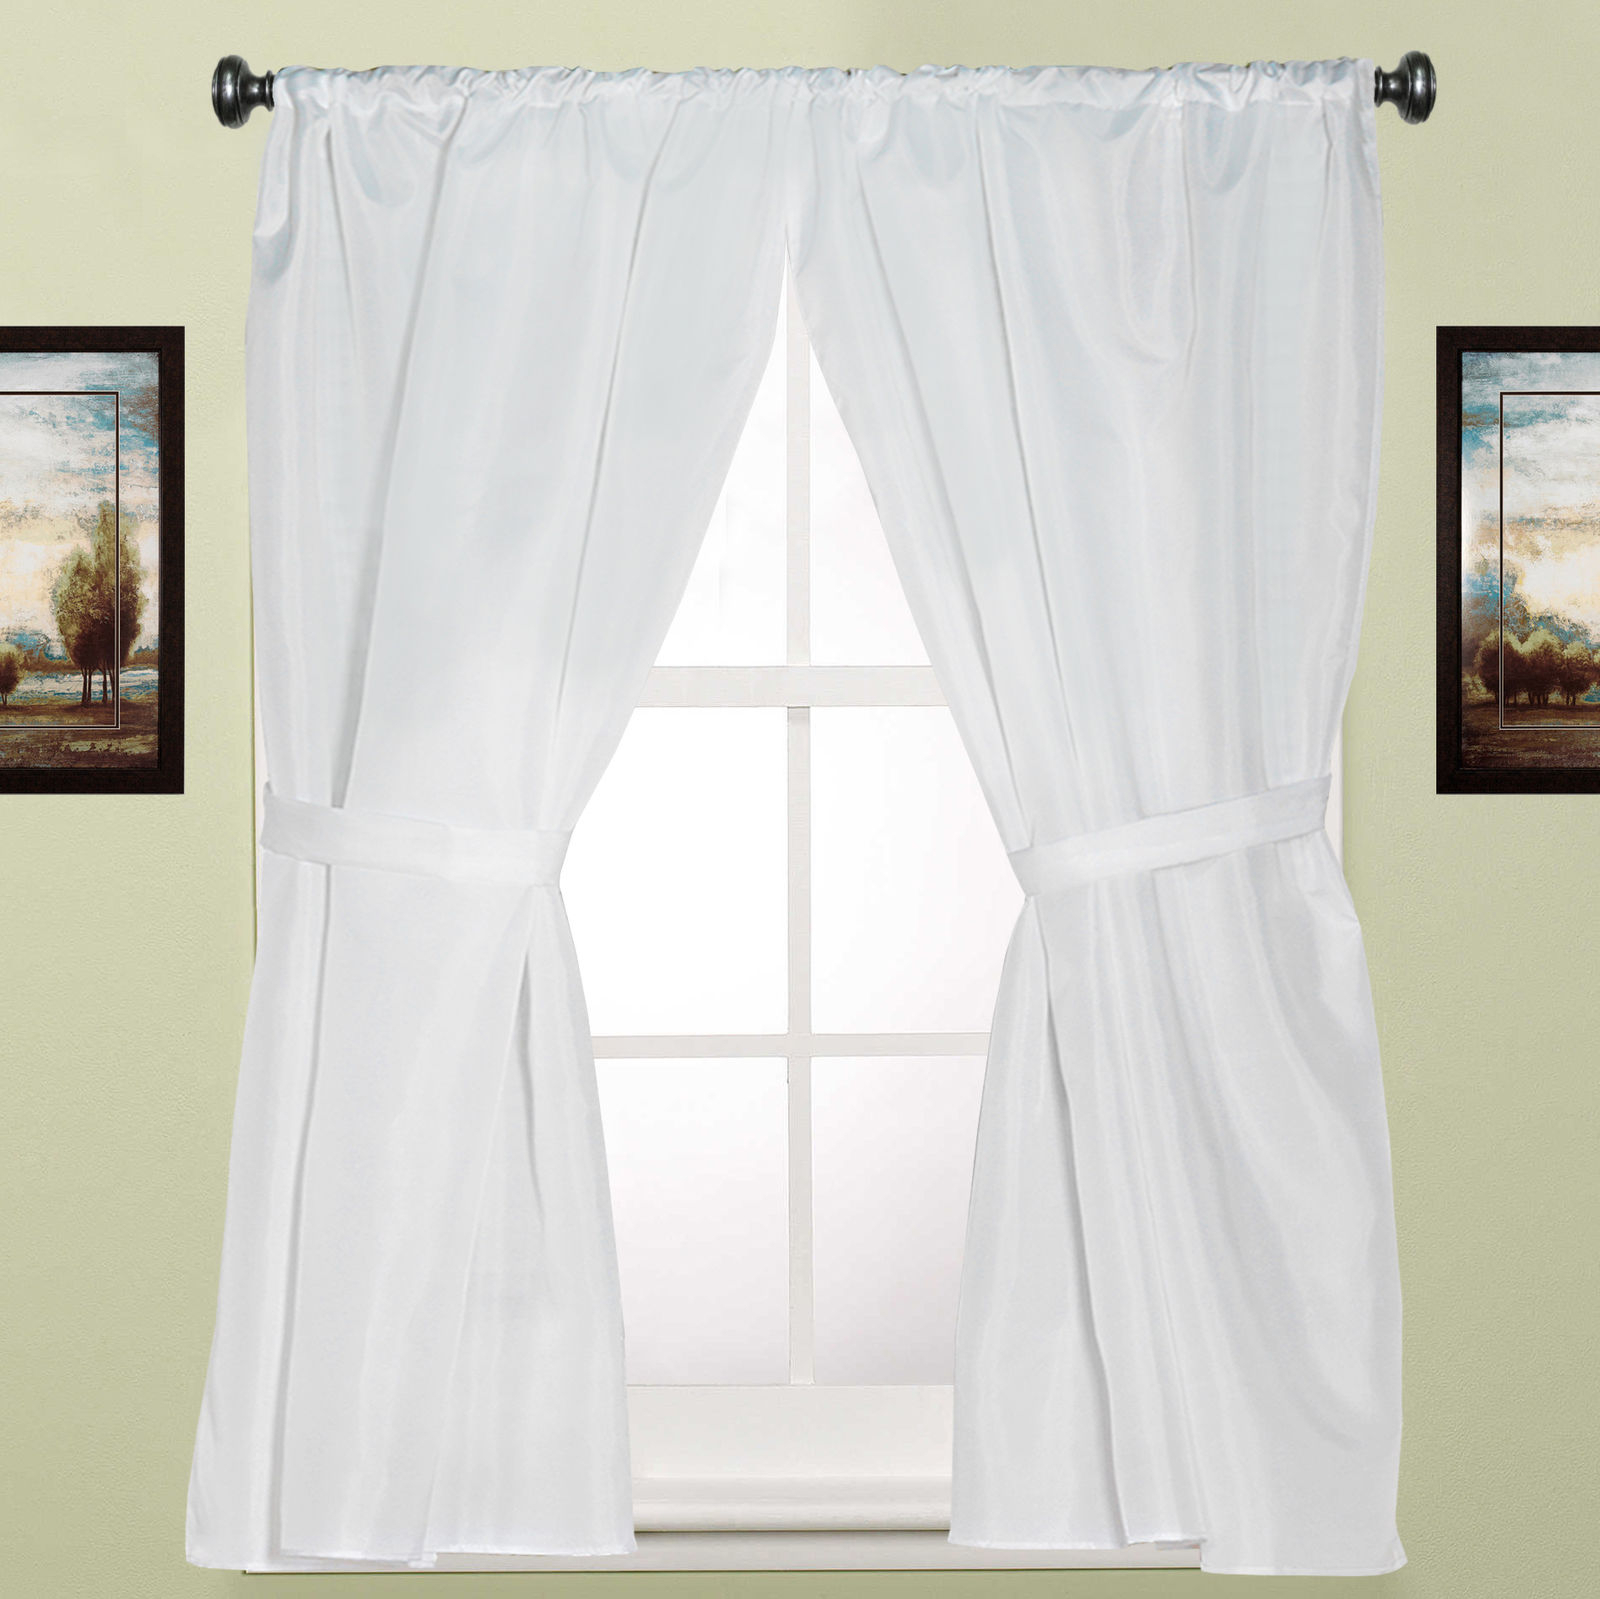 """Water Resistant White Fabric Bathroom Window Curtain Pair W/ Tiebacks 36"""" X 54"""" Inside Current Classic Hotel Quality Water Resistant Fabric Curtains Set With Tiebacks (View 4 of 20)"""